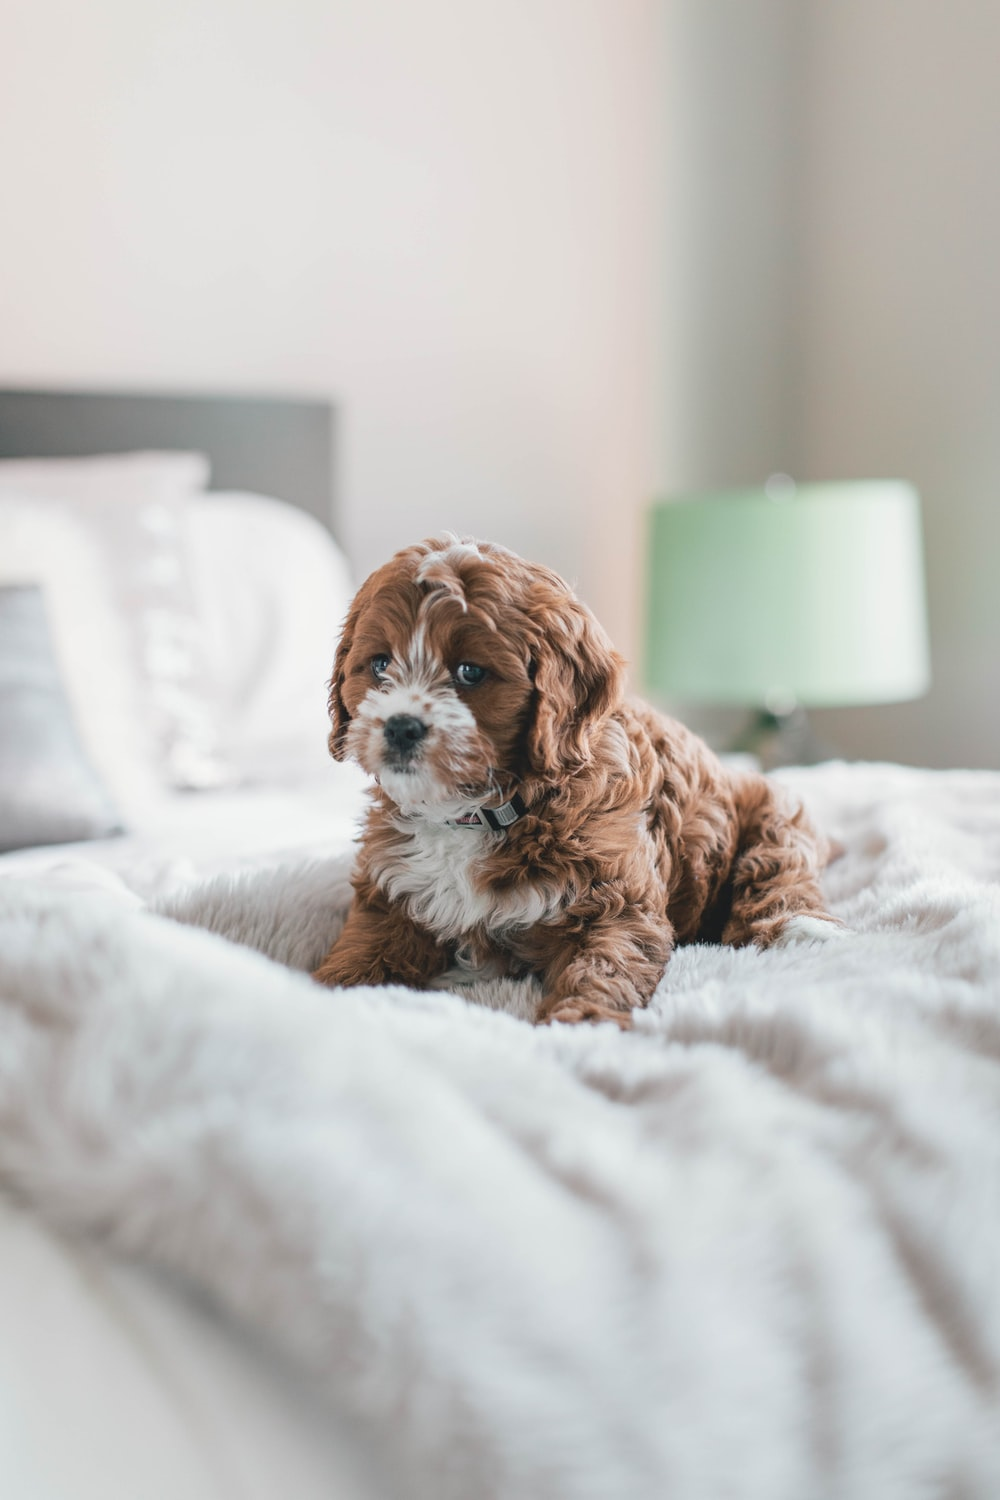 cute dog pictures hd download free images on unsplash